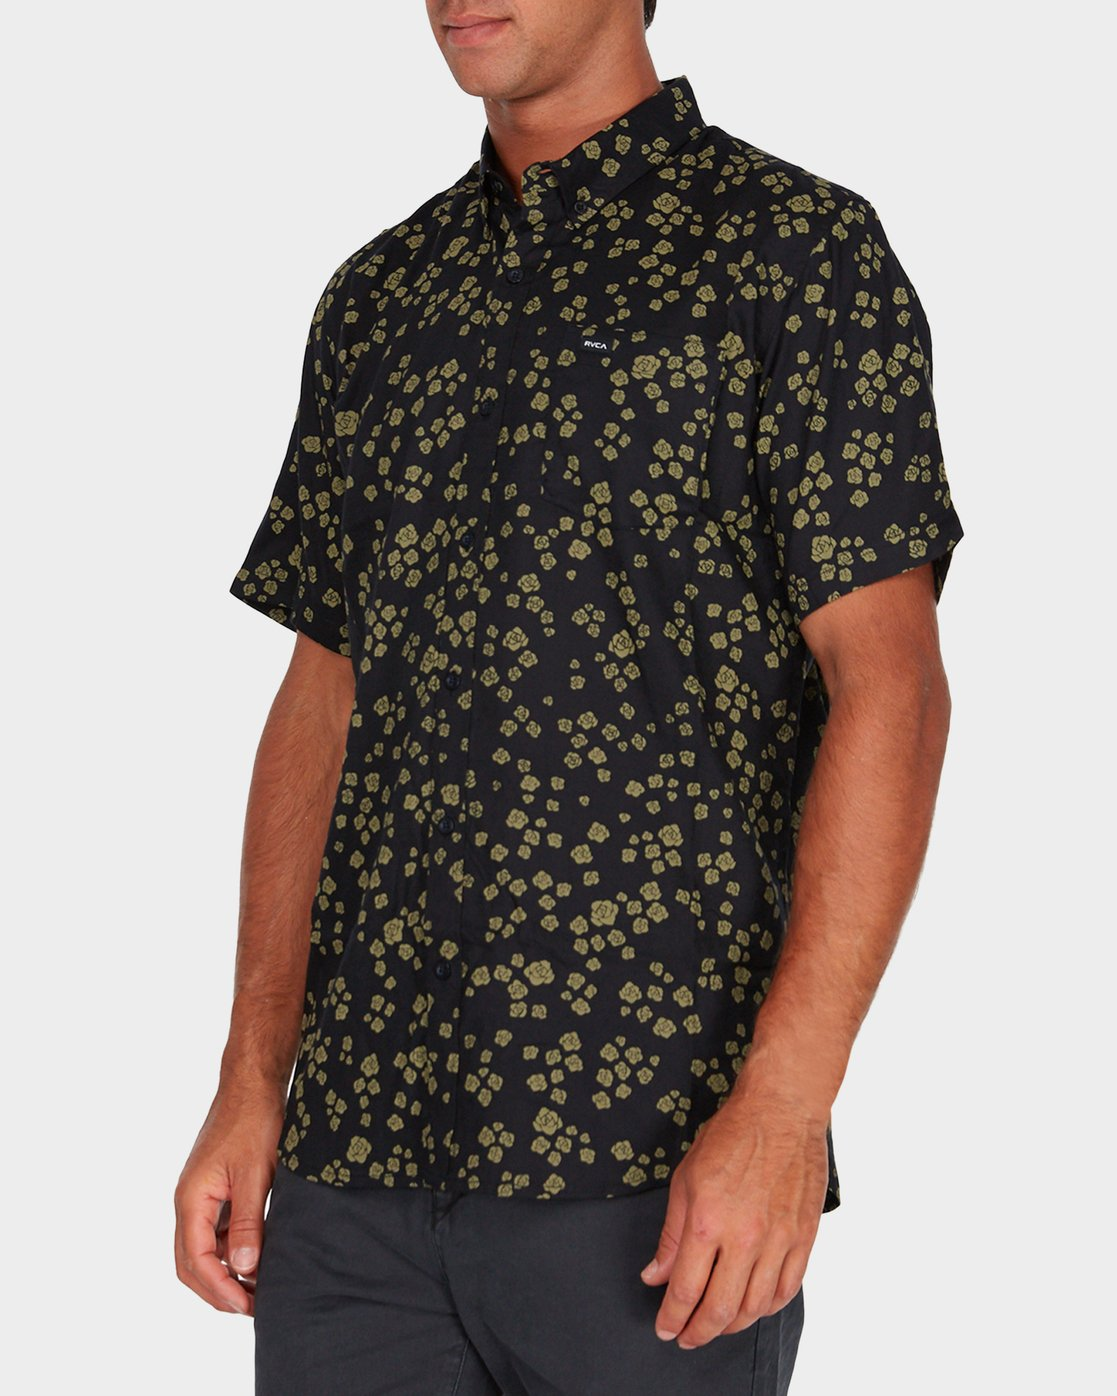 1 RVCA Rosa Short Sleeve Shirt  R182185 RVCA